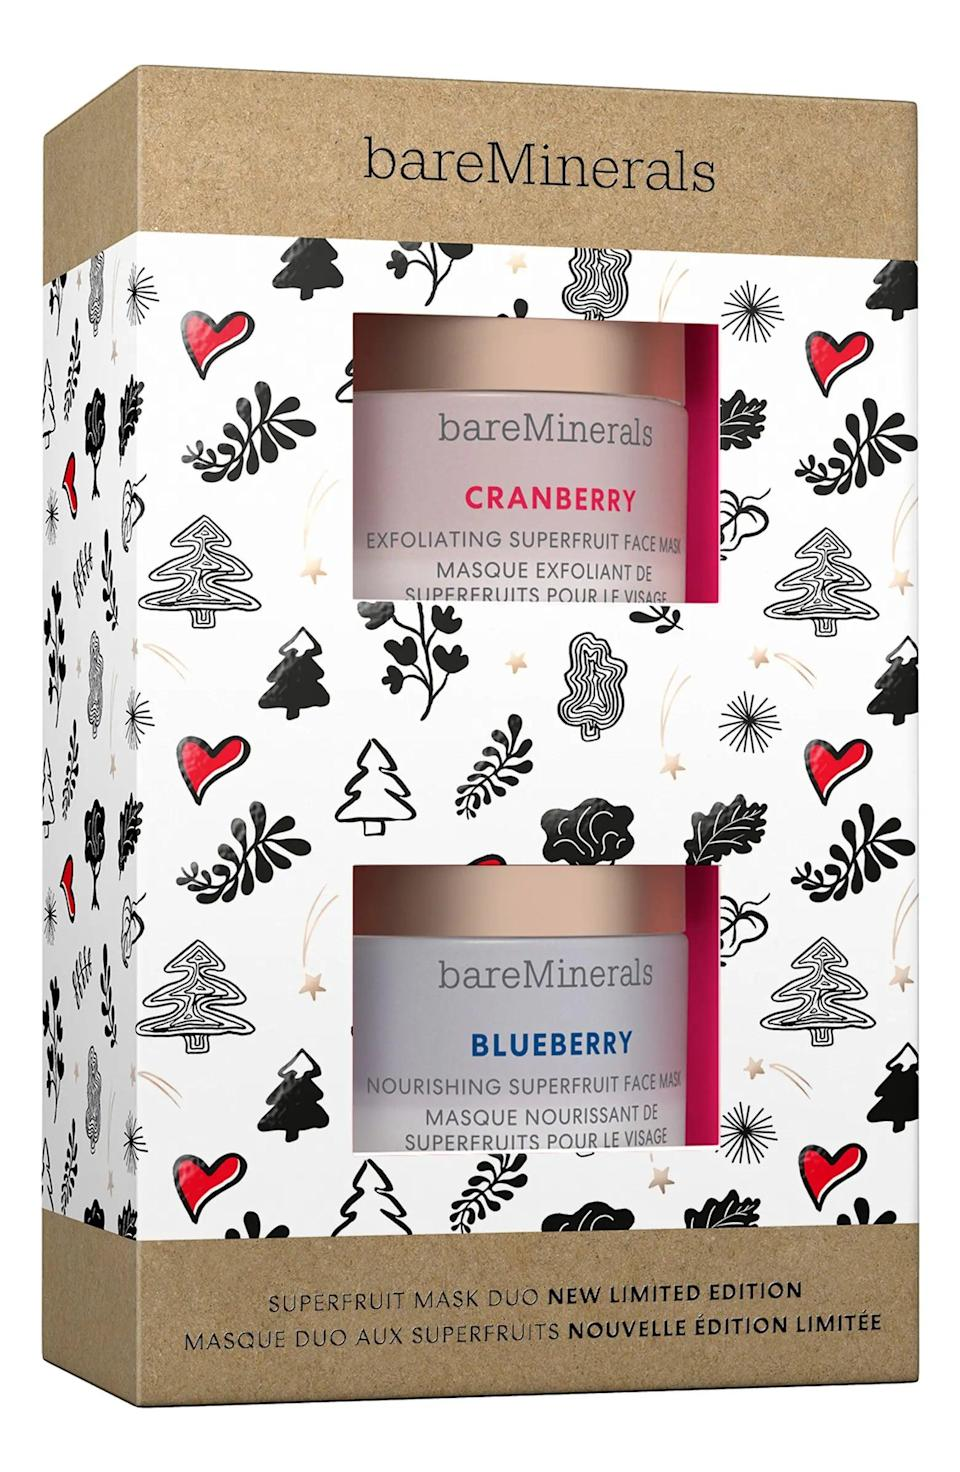 <p>Looking for a stocking stuffer for a skin-care lover? The <span>Bareminerals Superfruit Mini Face Mask Duo</span> ($20) has got you covered.</p>